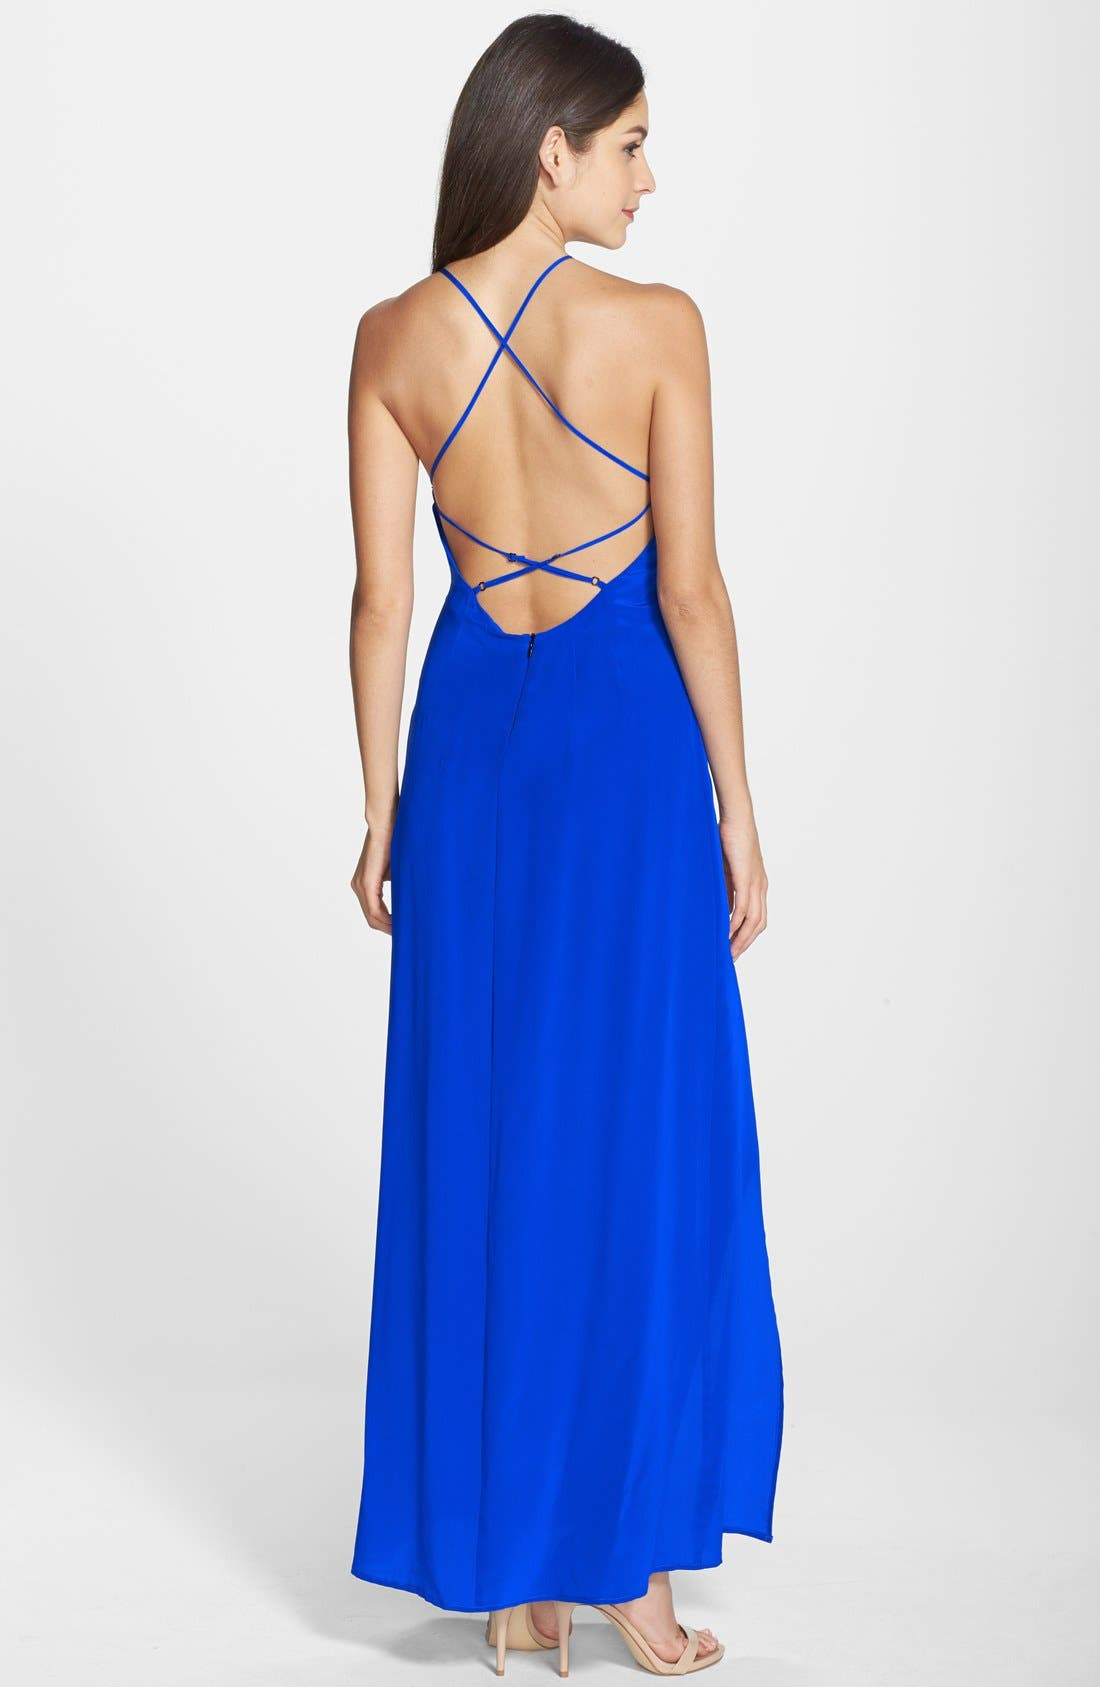 Strappy Back Silk Maxi Dress,                             Alternate thumbnail 2, color,                             421